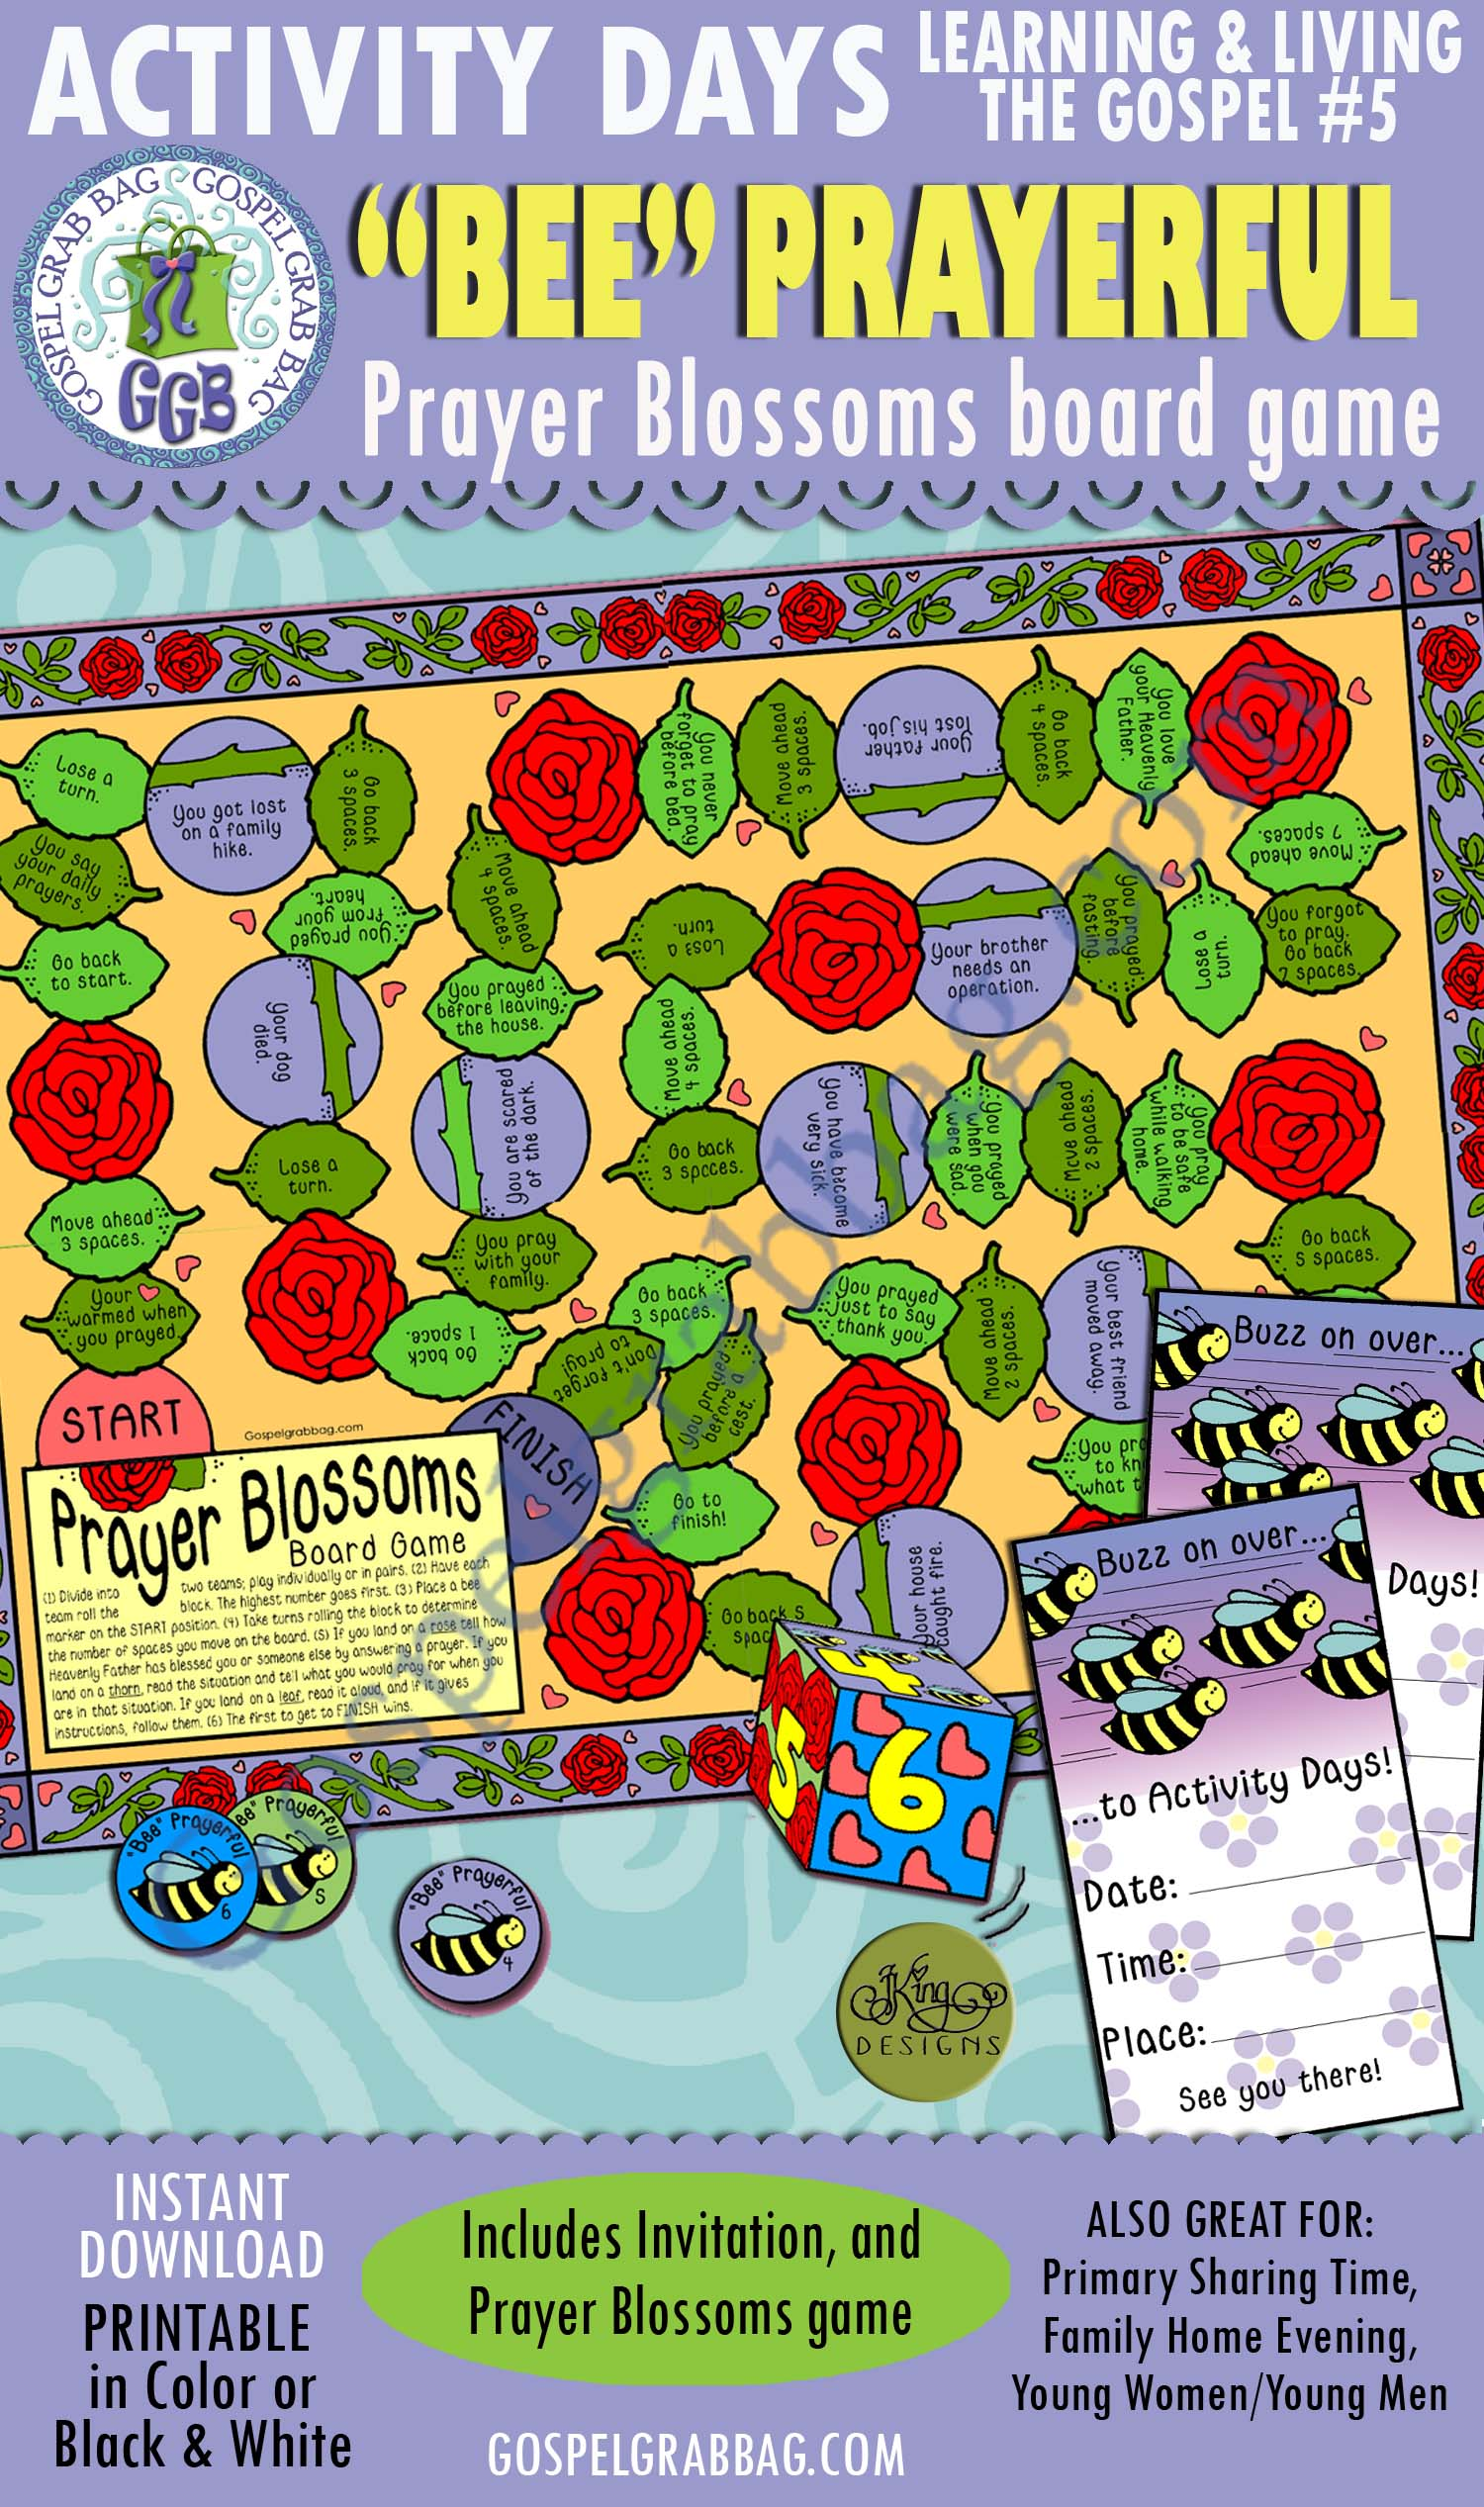 PRAYER: Activity Days: Learning and Living the Gospel, Goal 5 Invitation, Activity: Prayer Blossoms board game